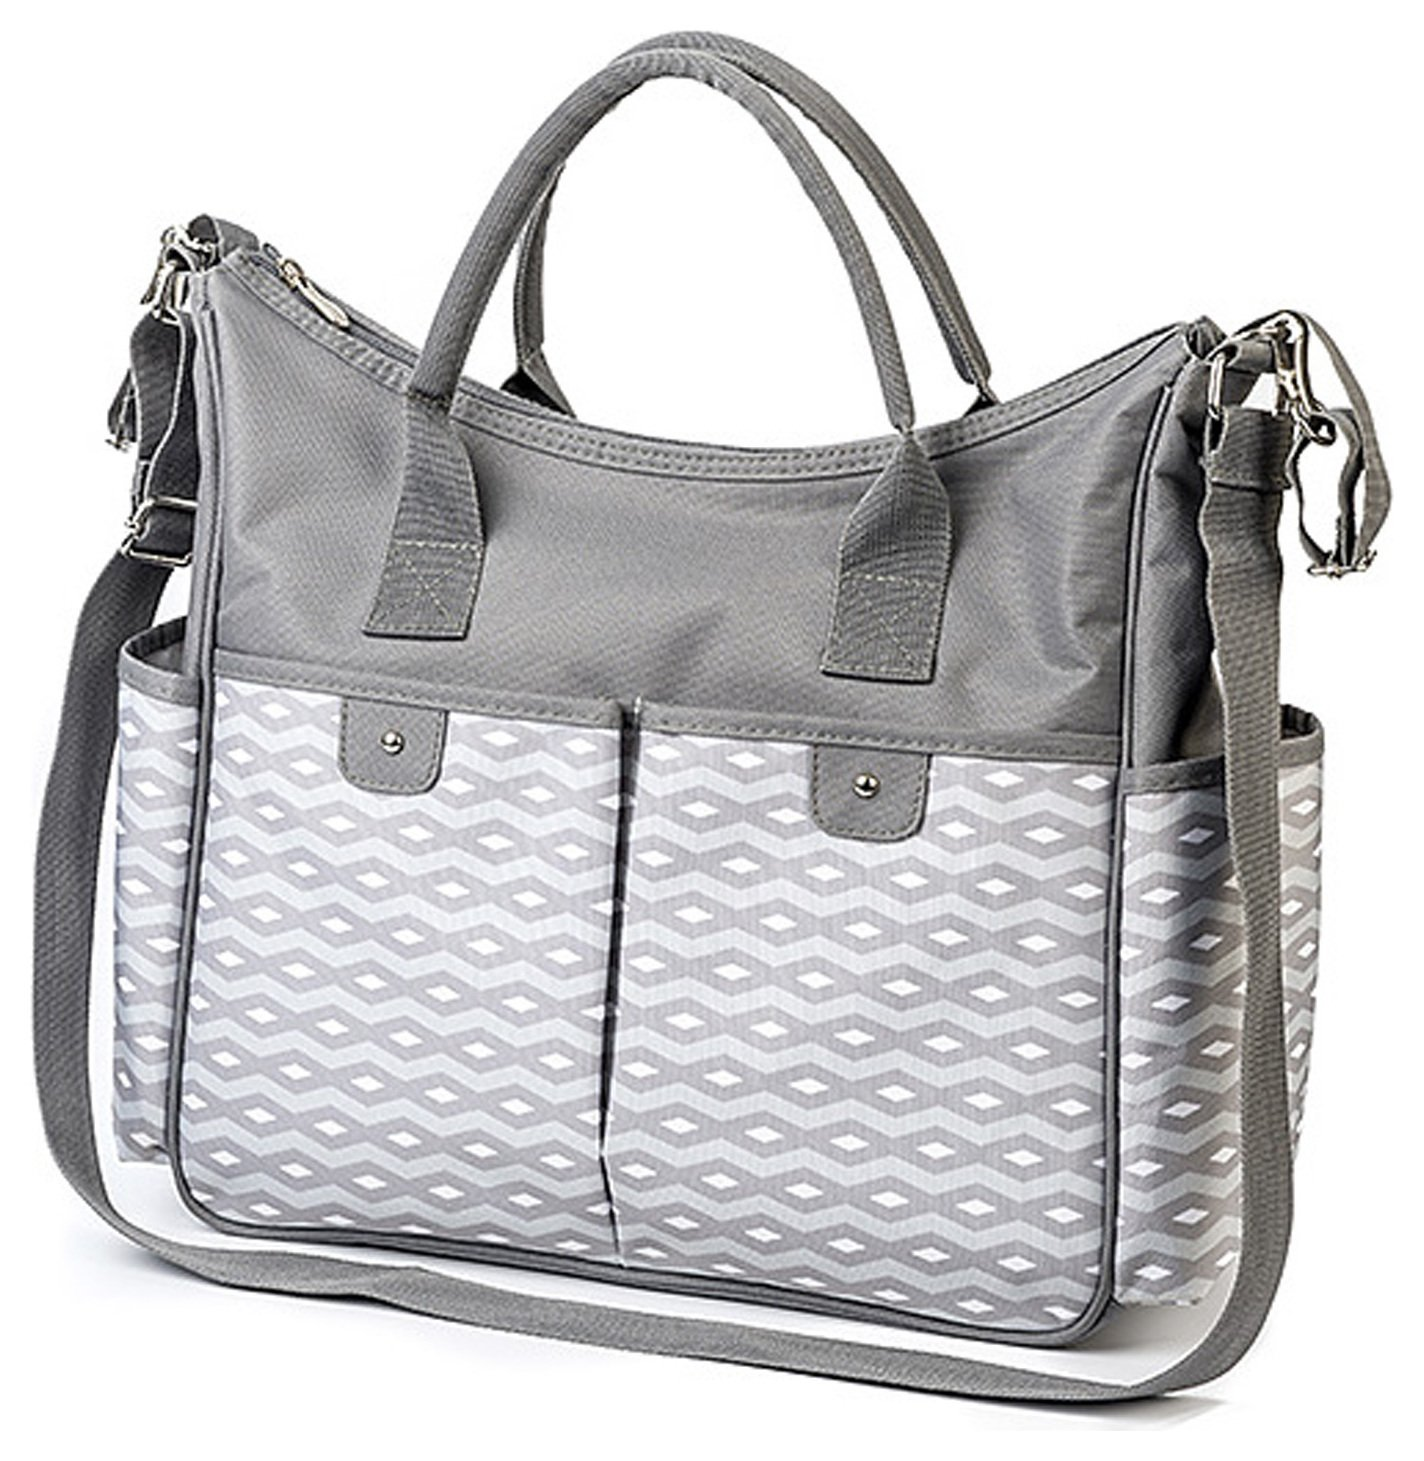 baby-ono-city-smart-bag-grey